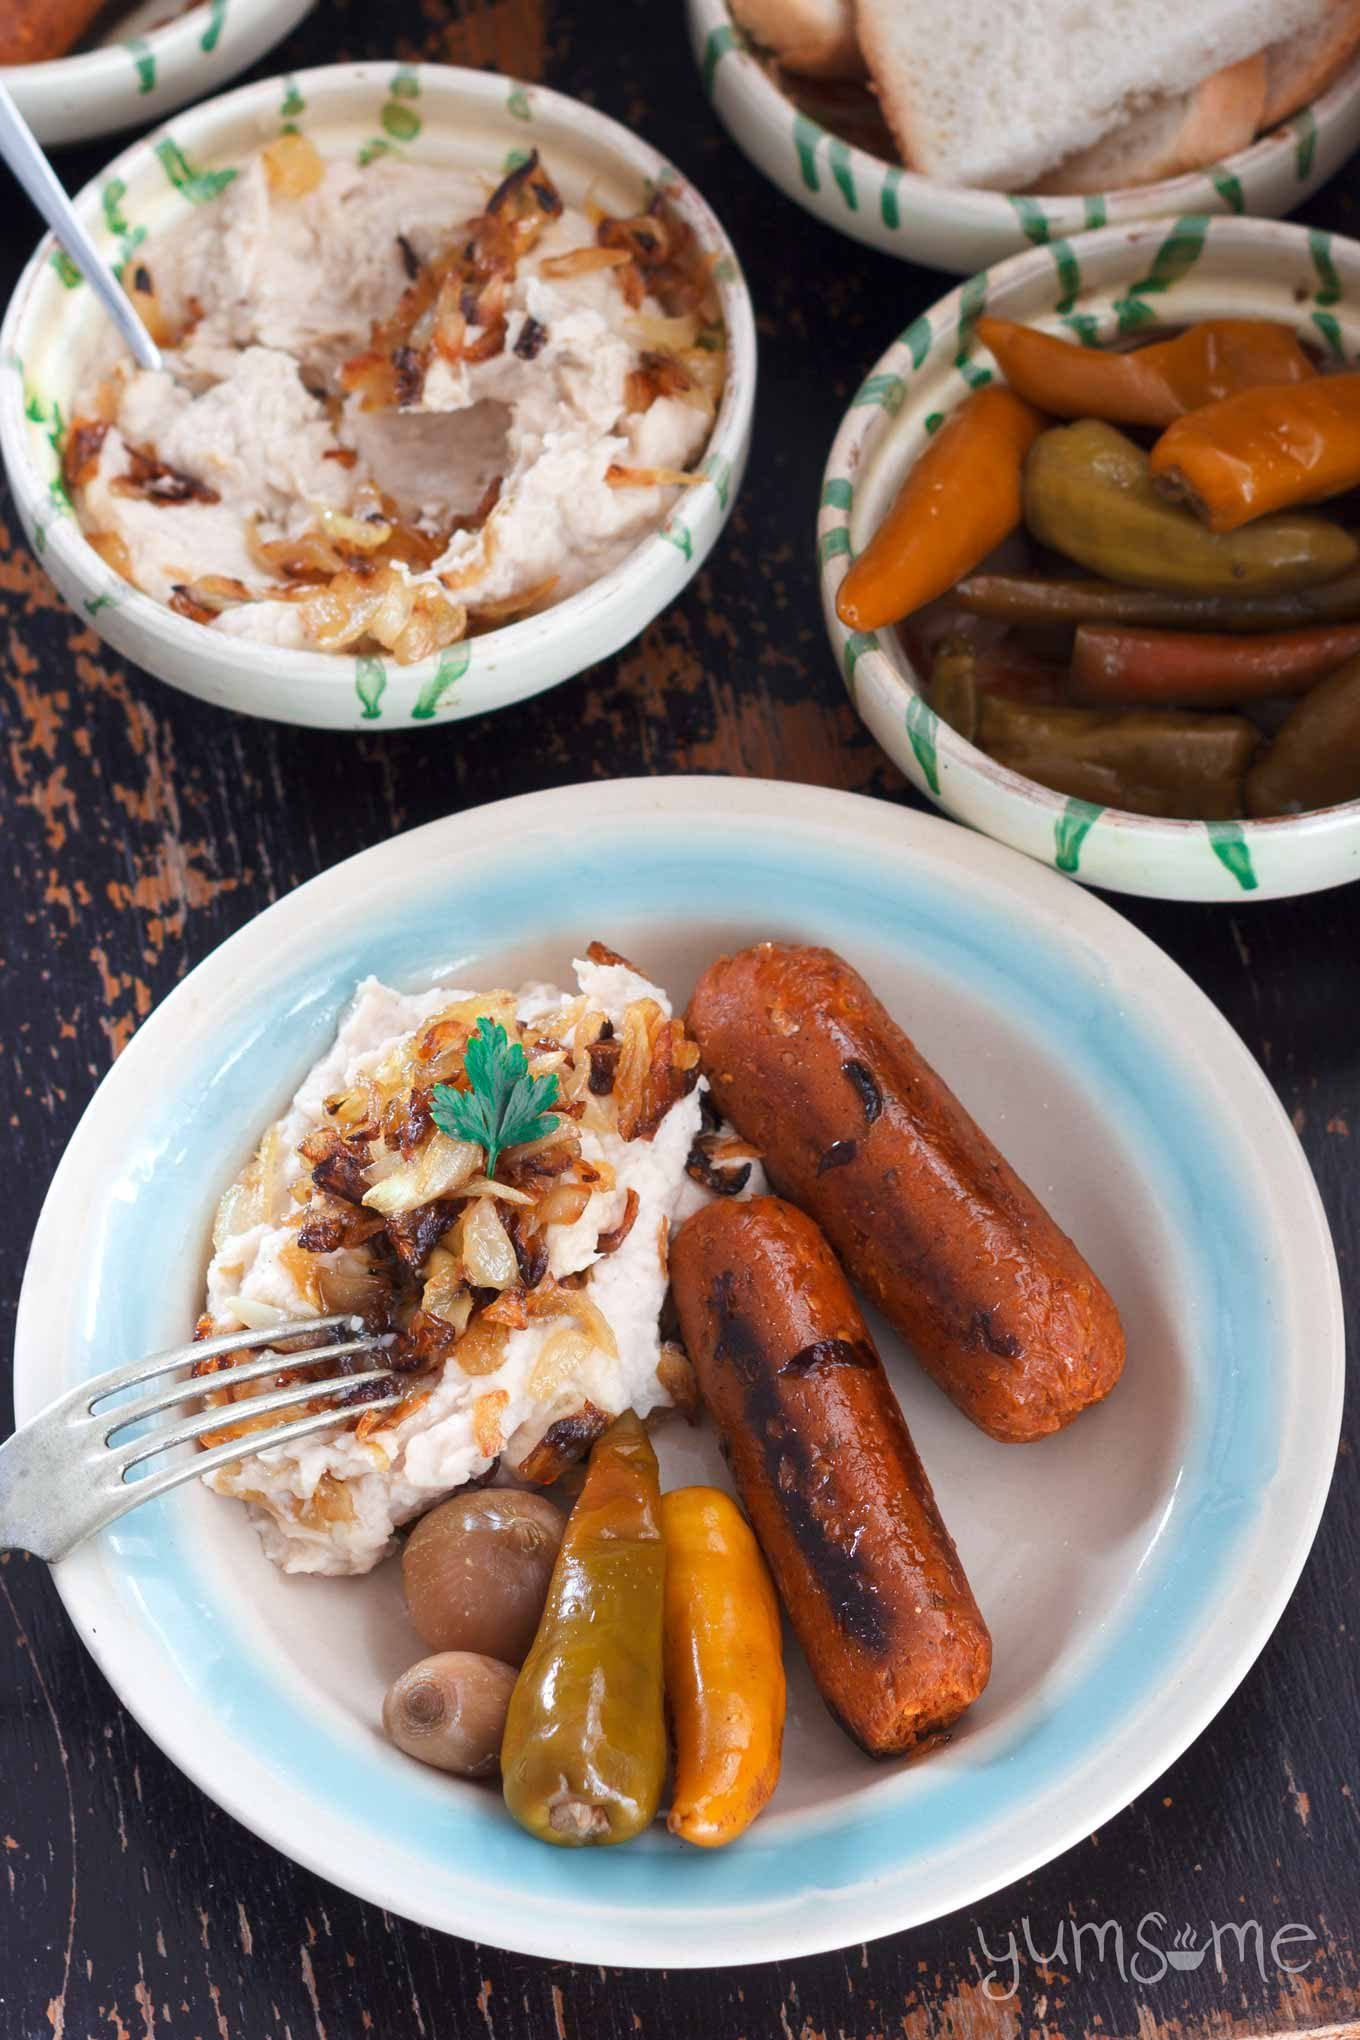 Closeup overhead shot of a blue and white dish of fasole with caramelised onions, sausages, and pickles. Dishes of fasole and pickles are in the background.